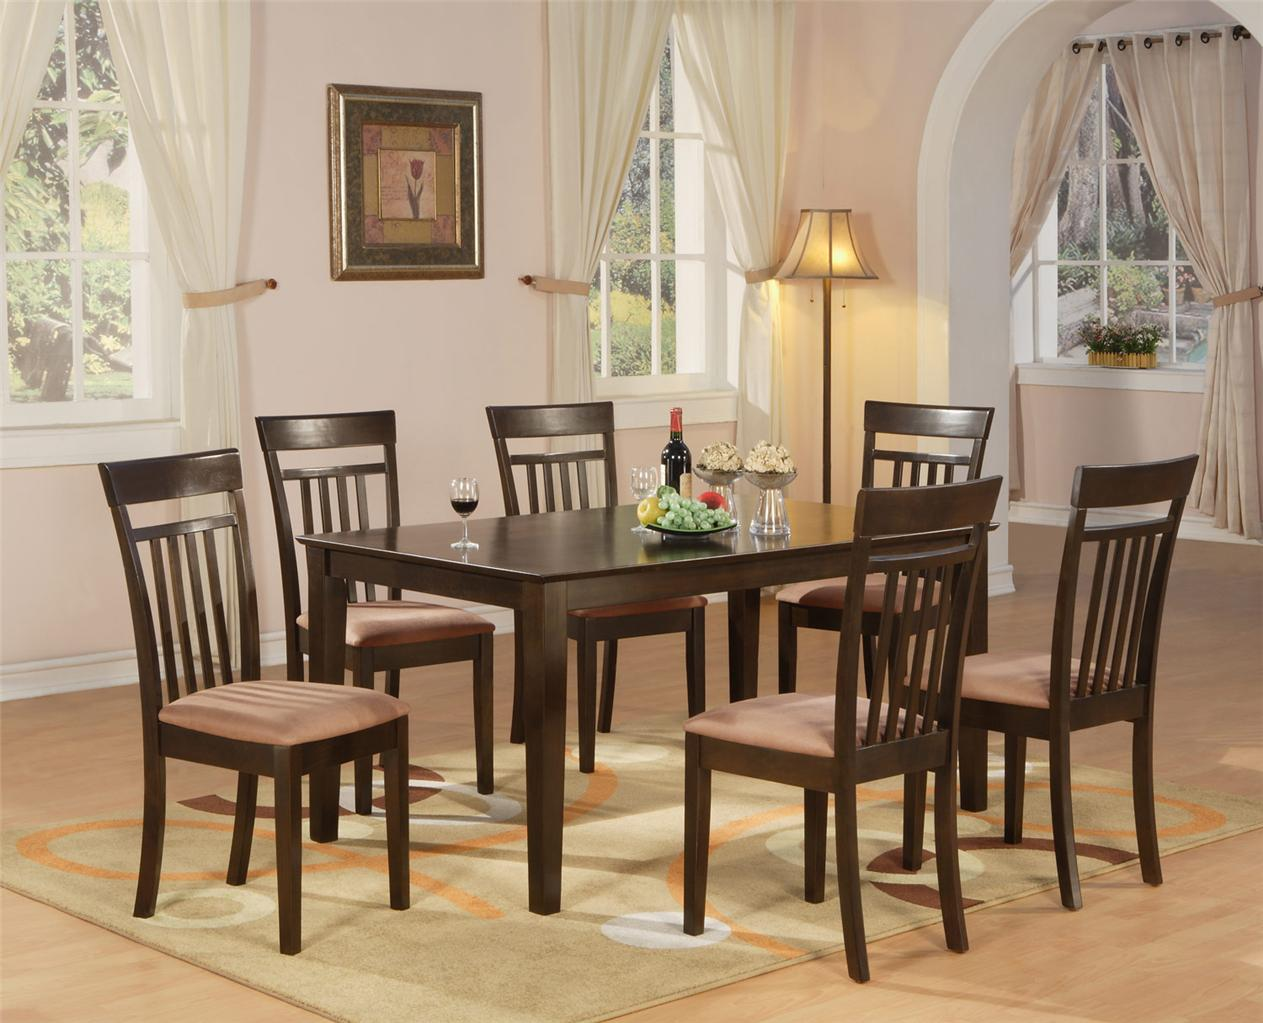 7 pc dining room dinette kitchen set table and 6 chairs ebay for Kitchen and dining room chairs